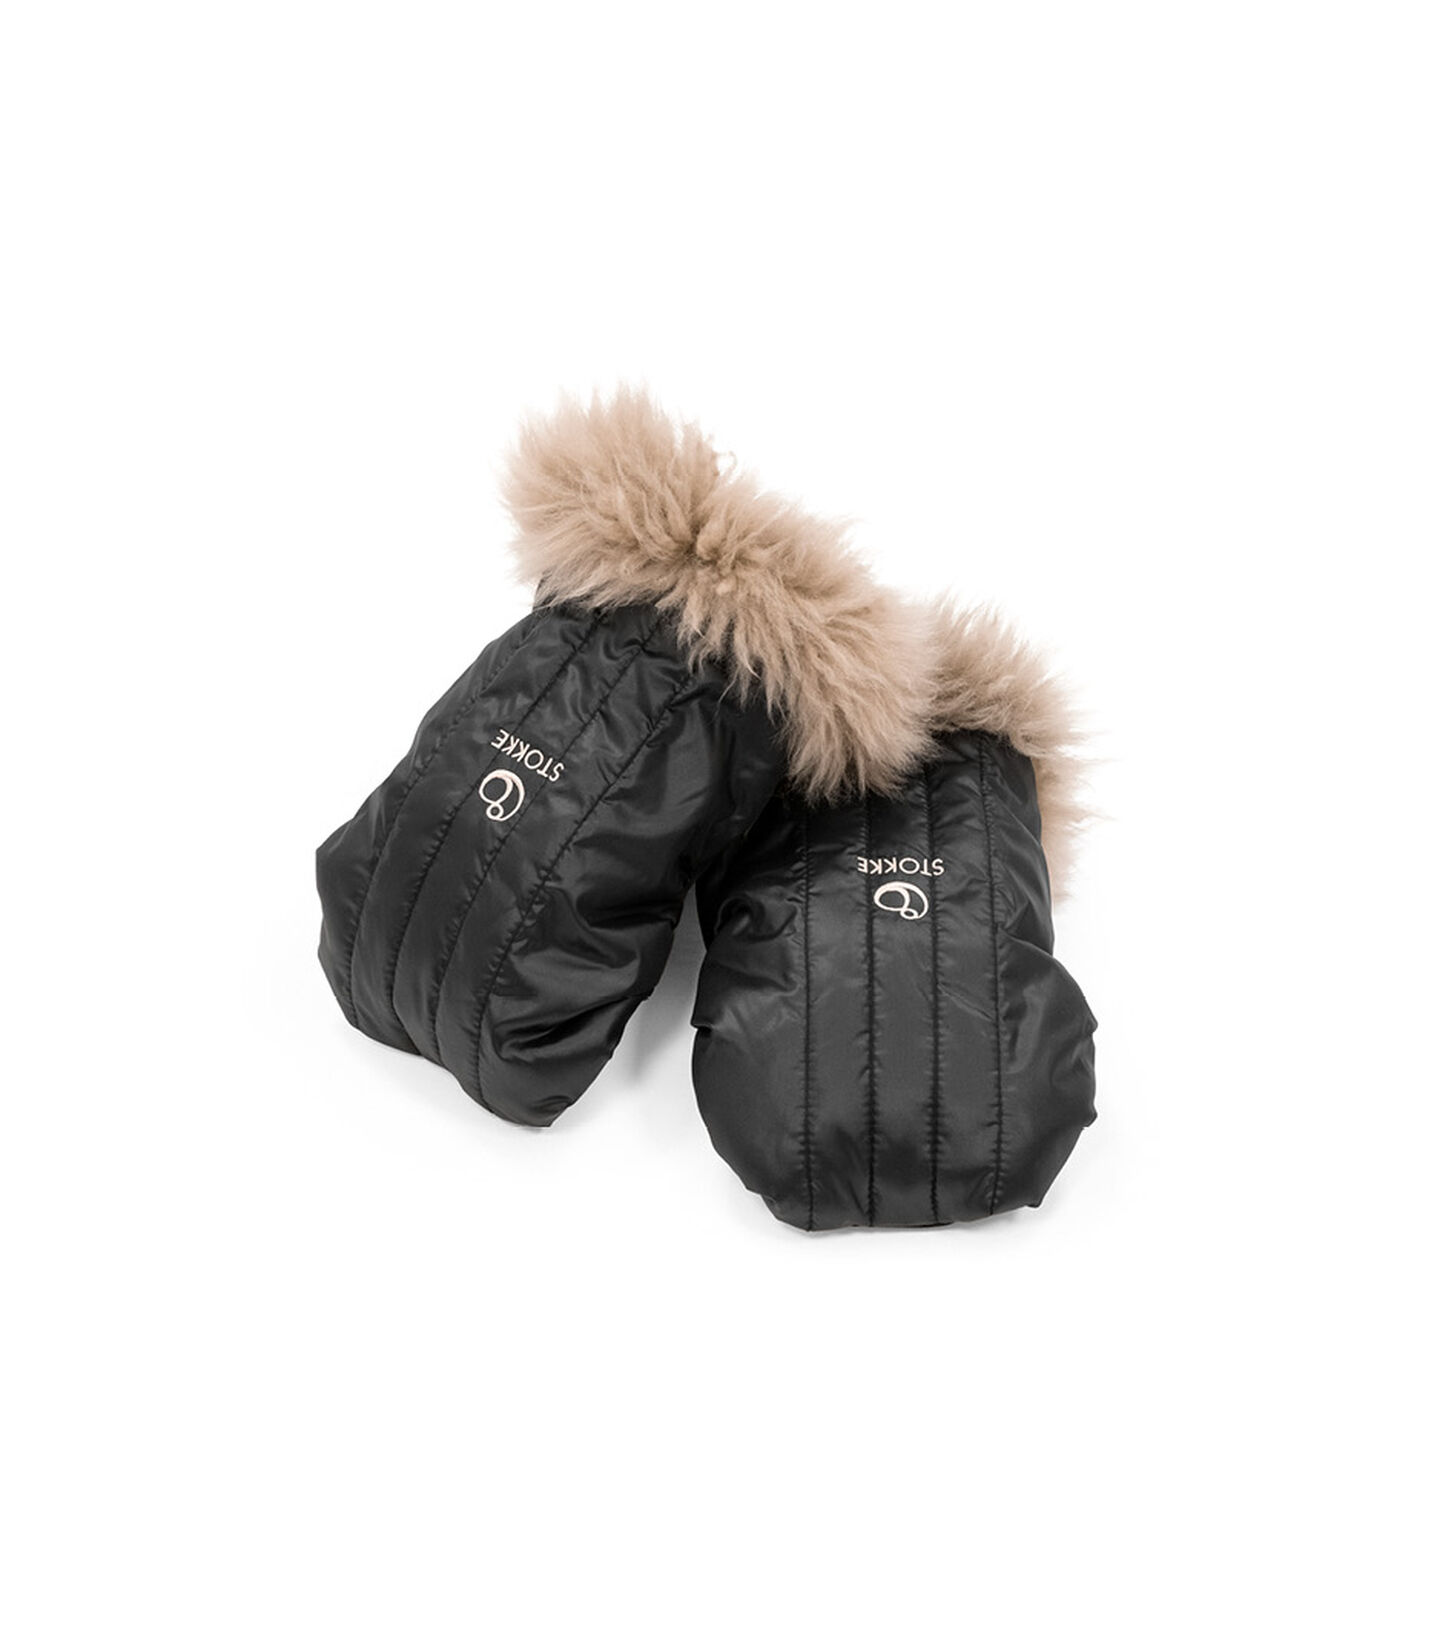 Stokke® Stroller Mittens Onyx Black, Onyx Black, mainview view 2